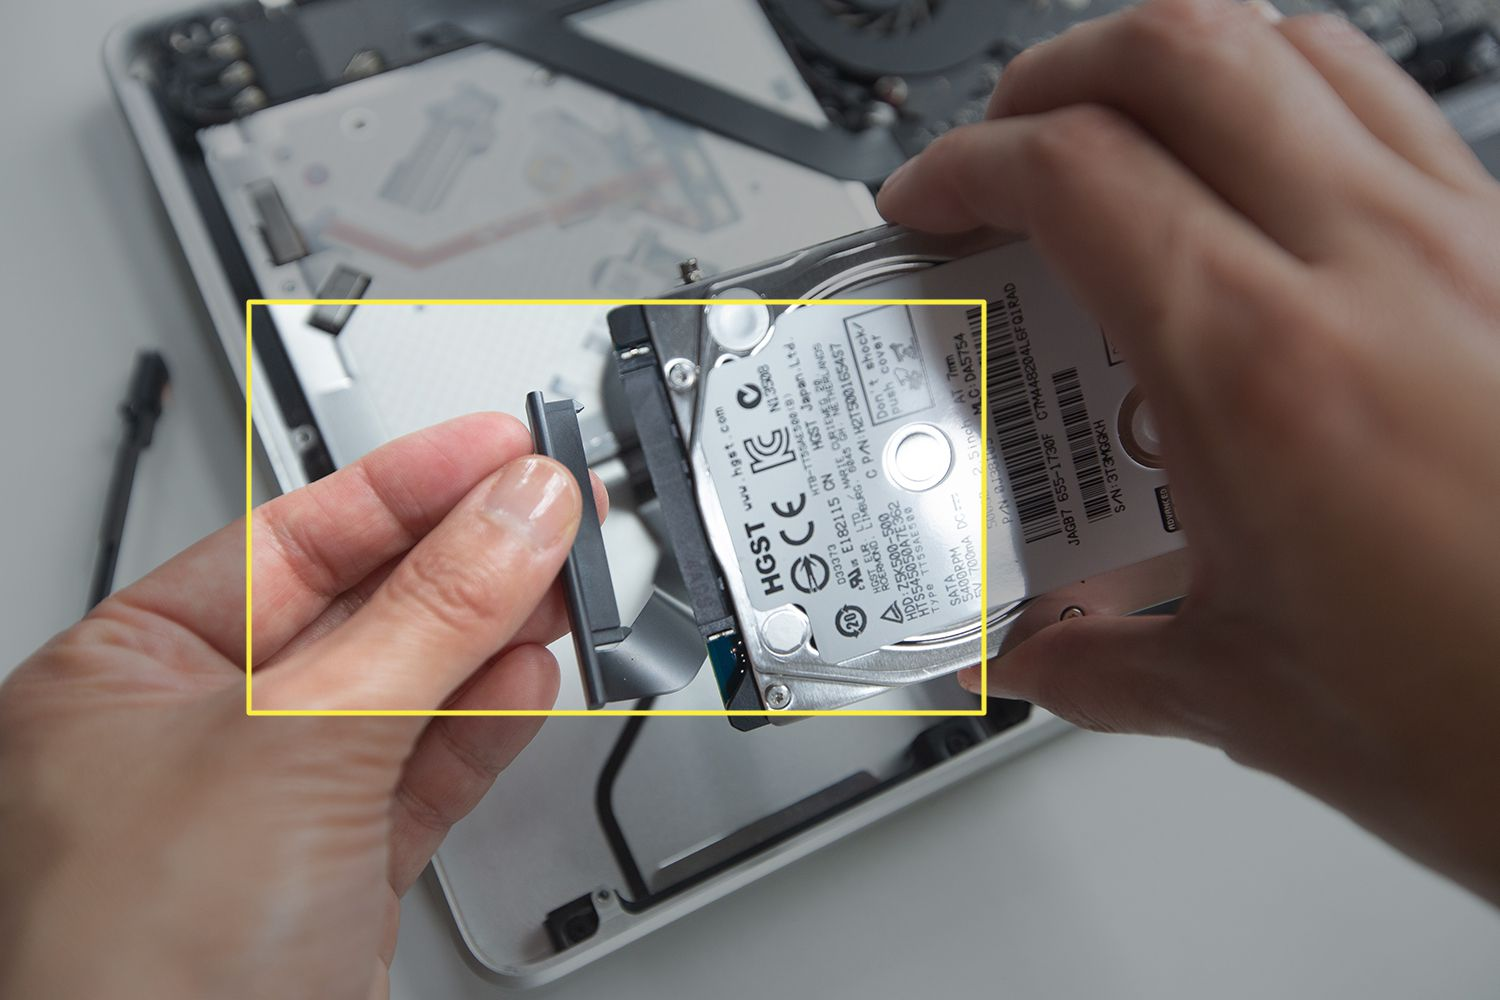 Removing the connector cable from a MacBook Pro hard drive